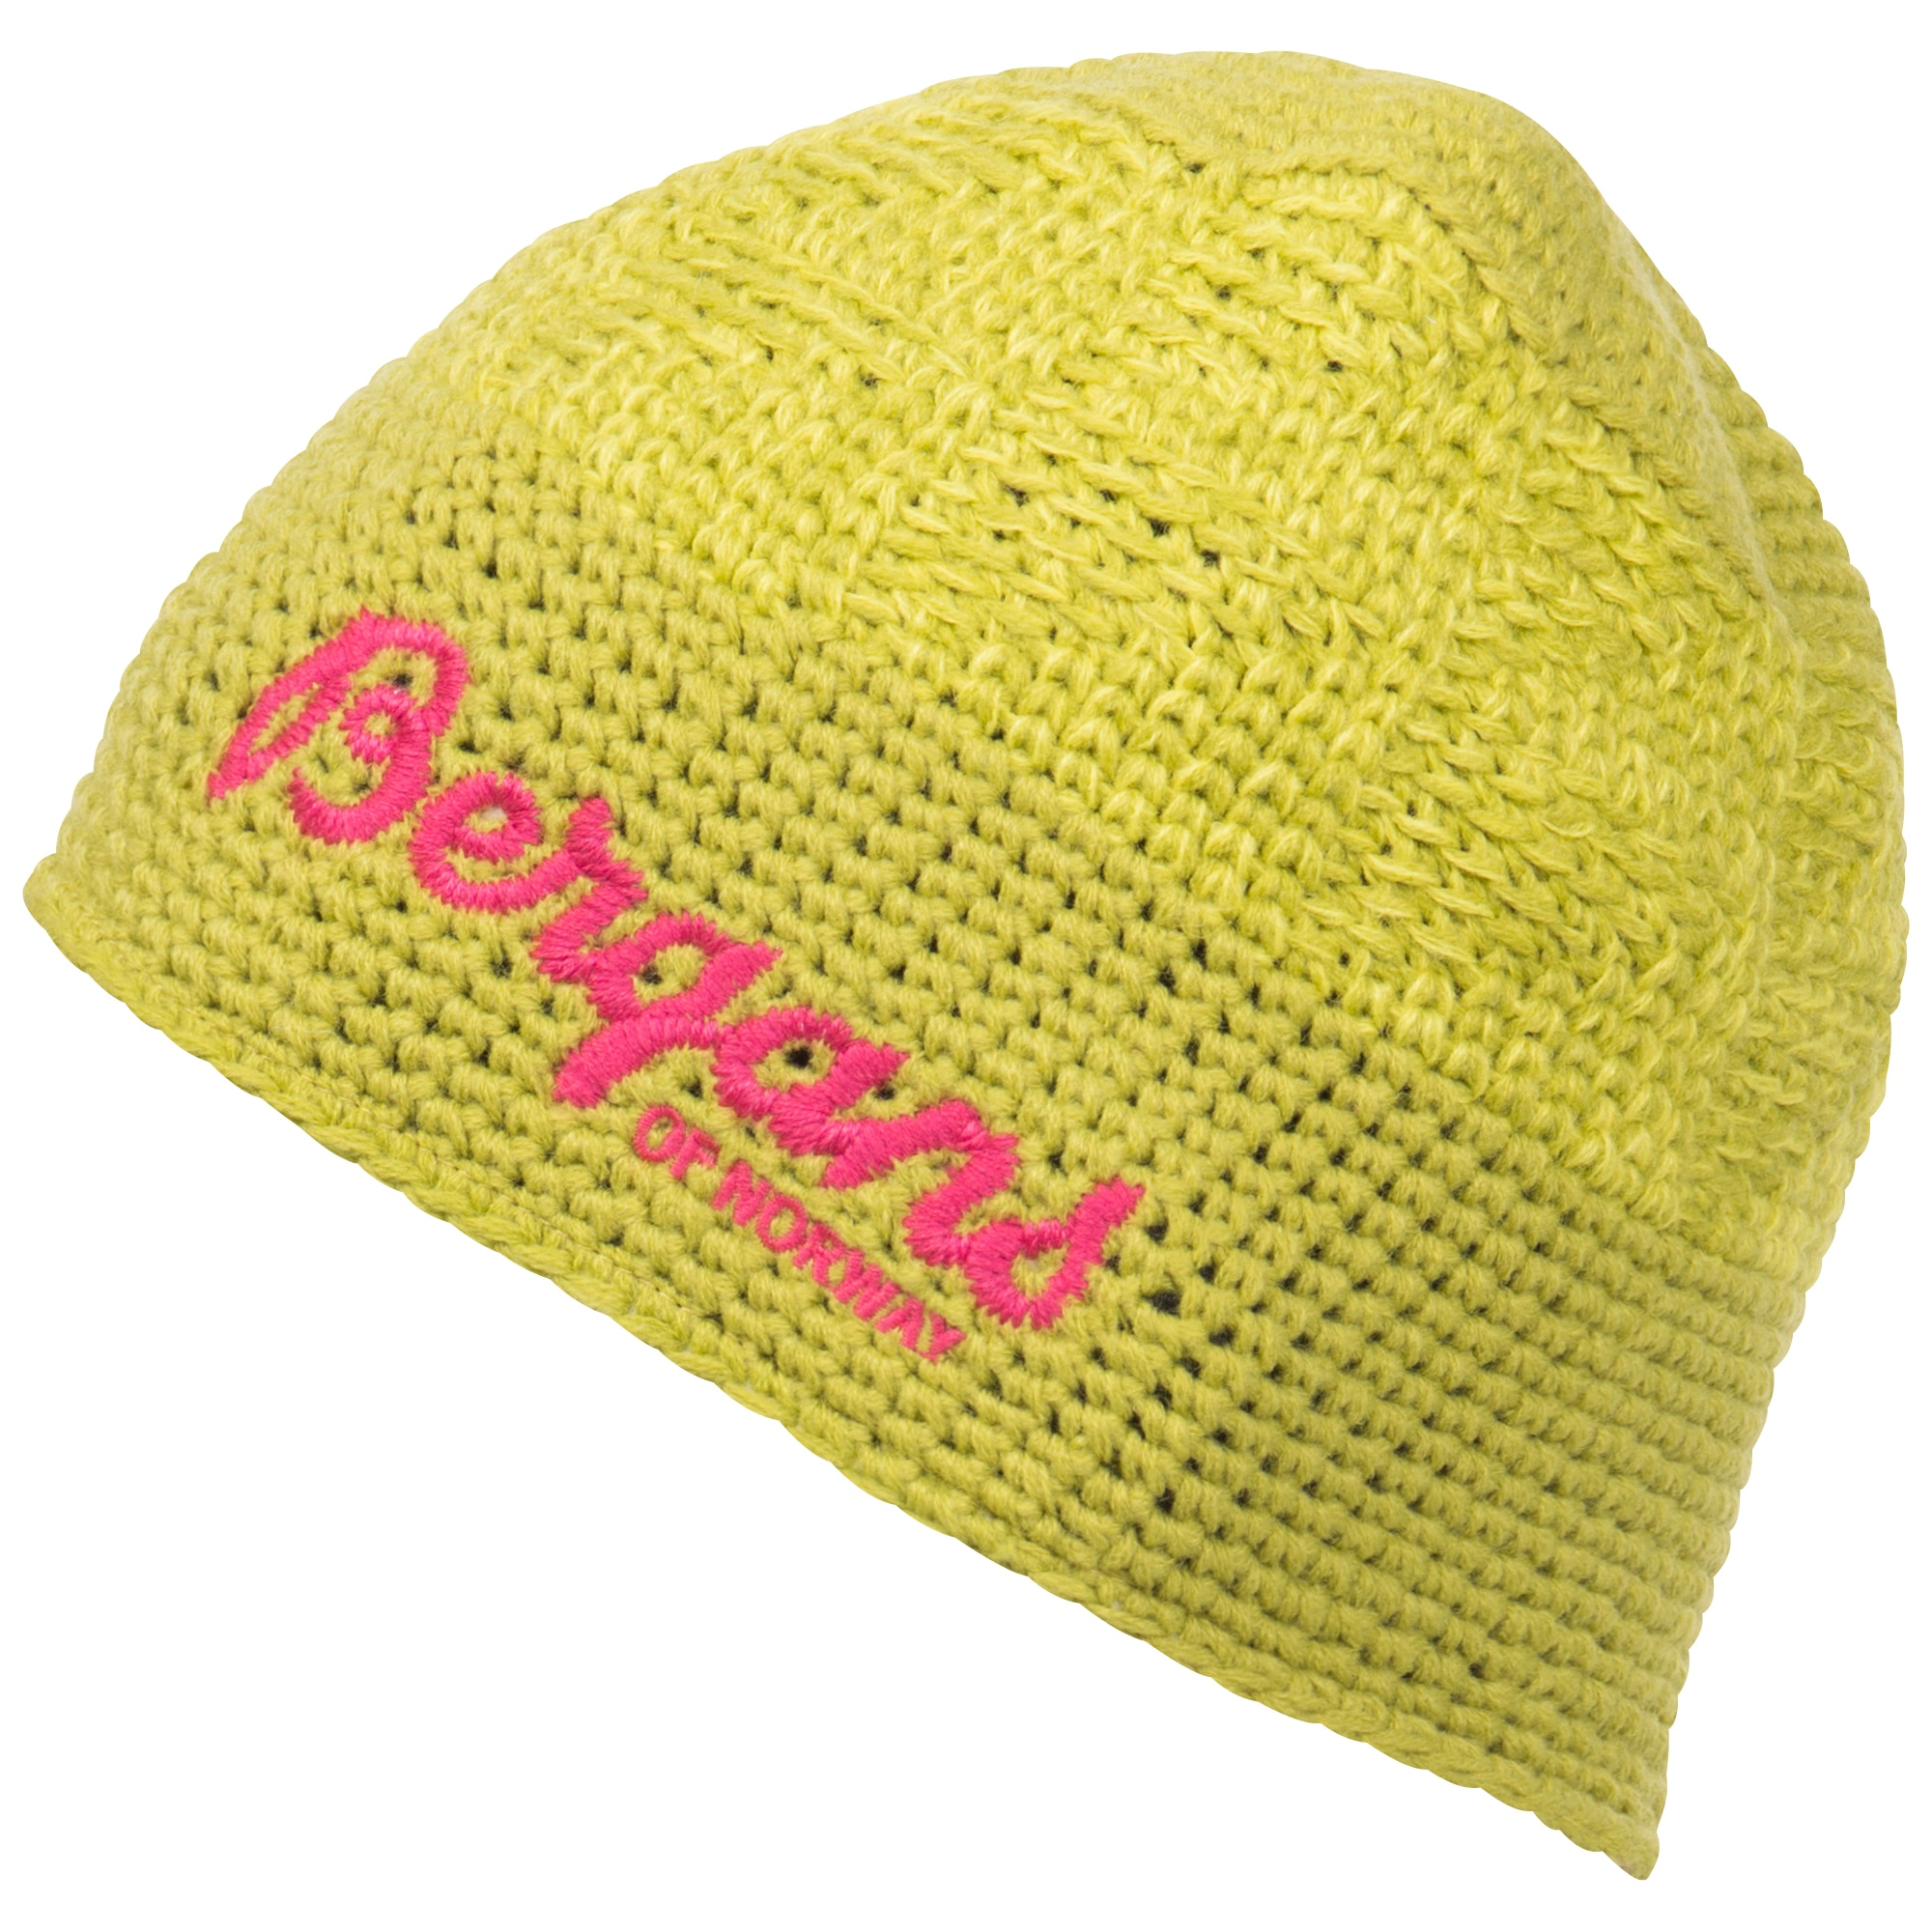 Tryvann Youth Beanie